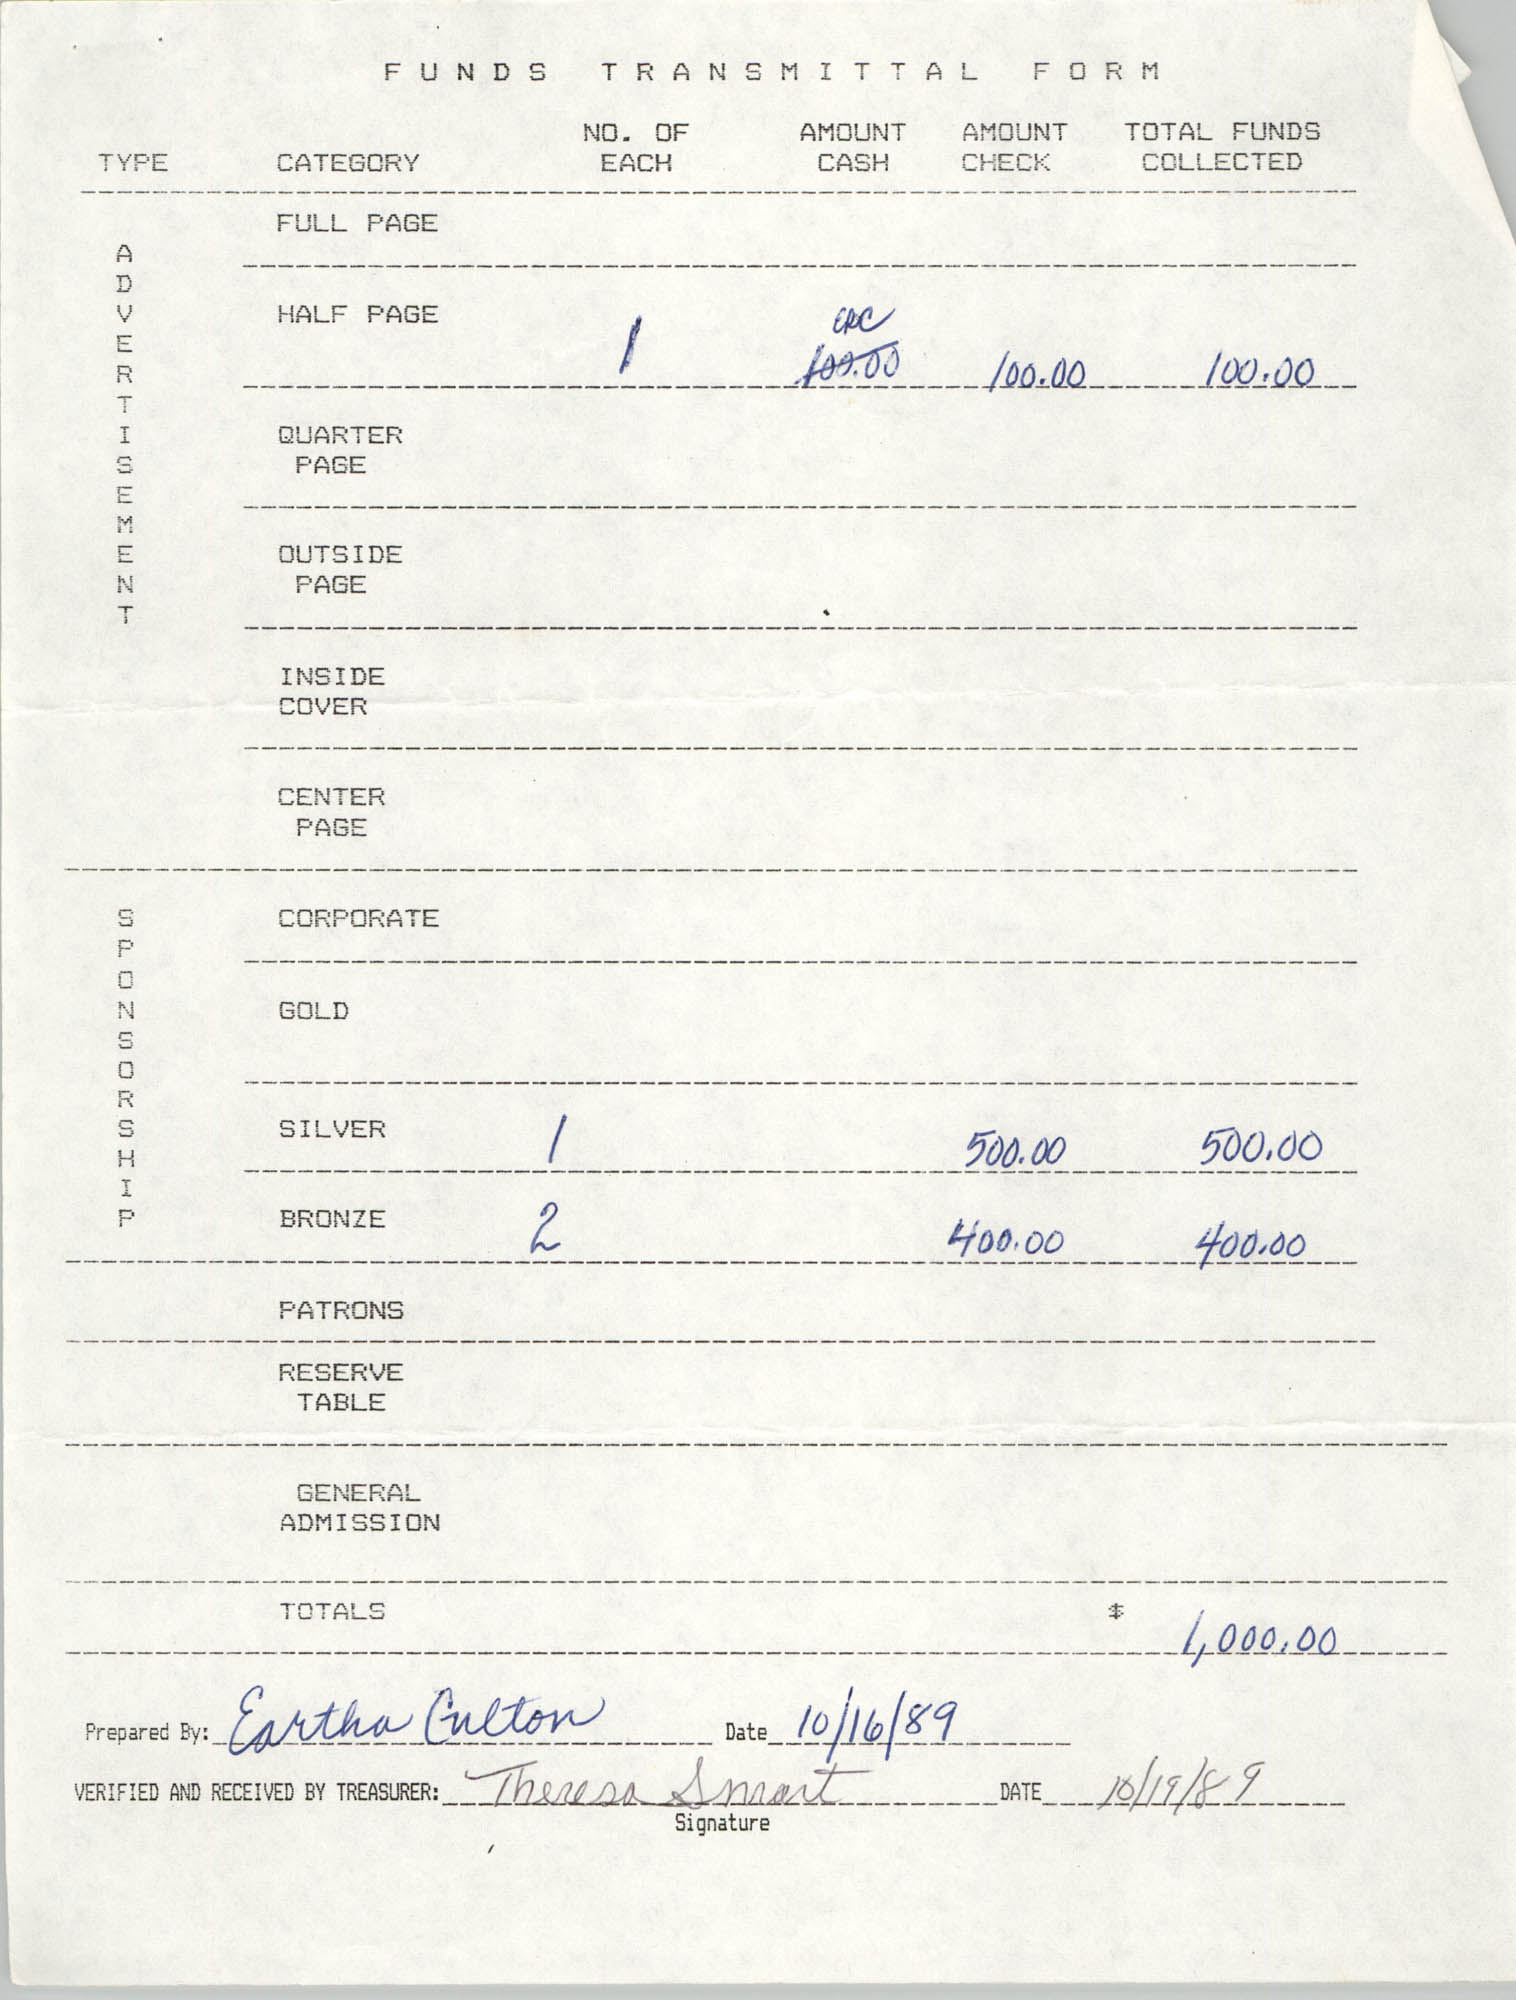 Funds Transmittal Form, E. Culton and Theresa Smart, October 1989